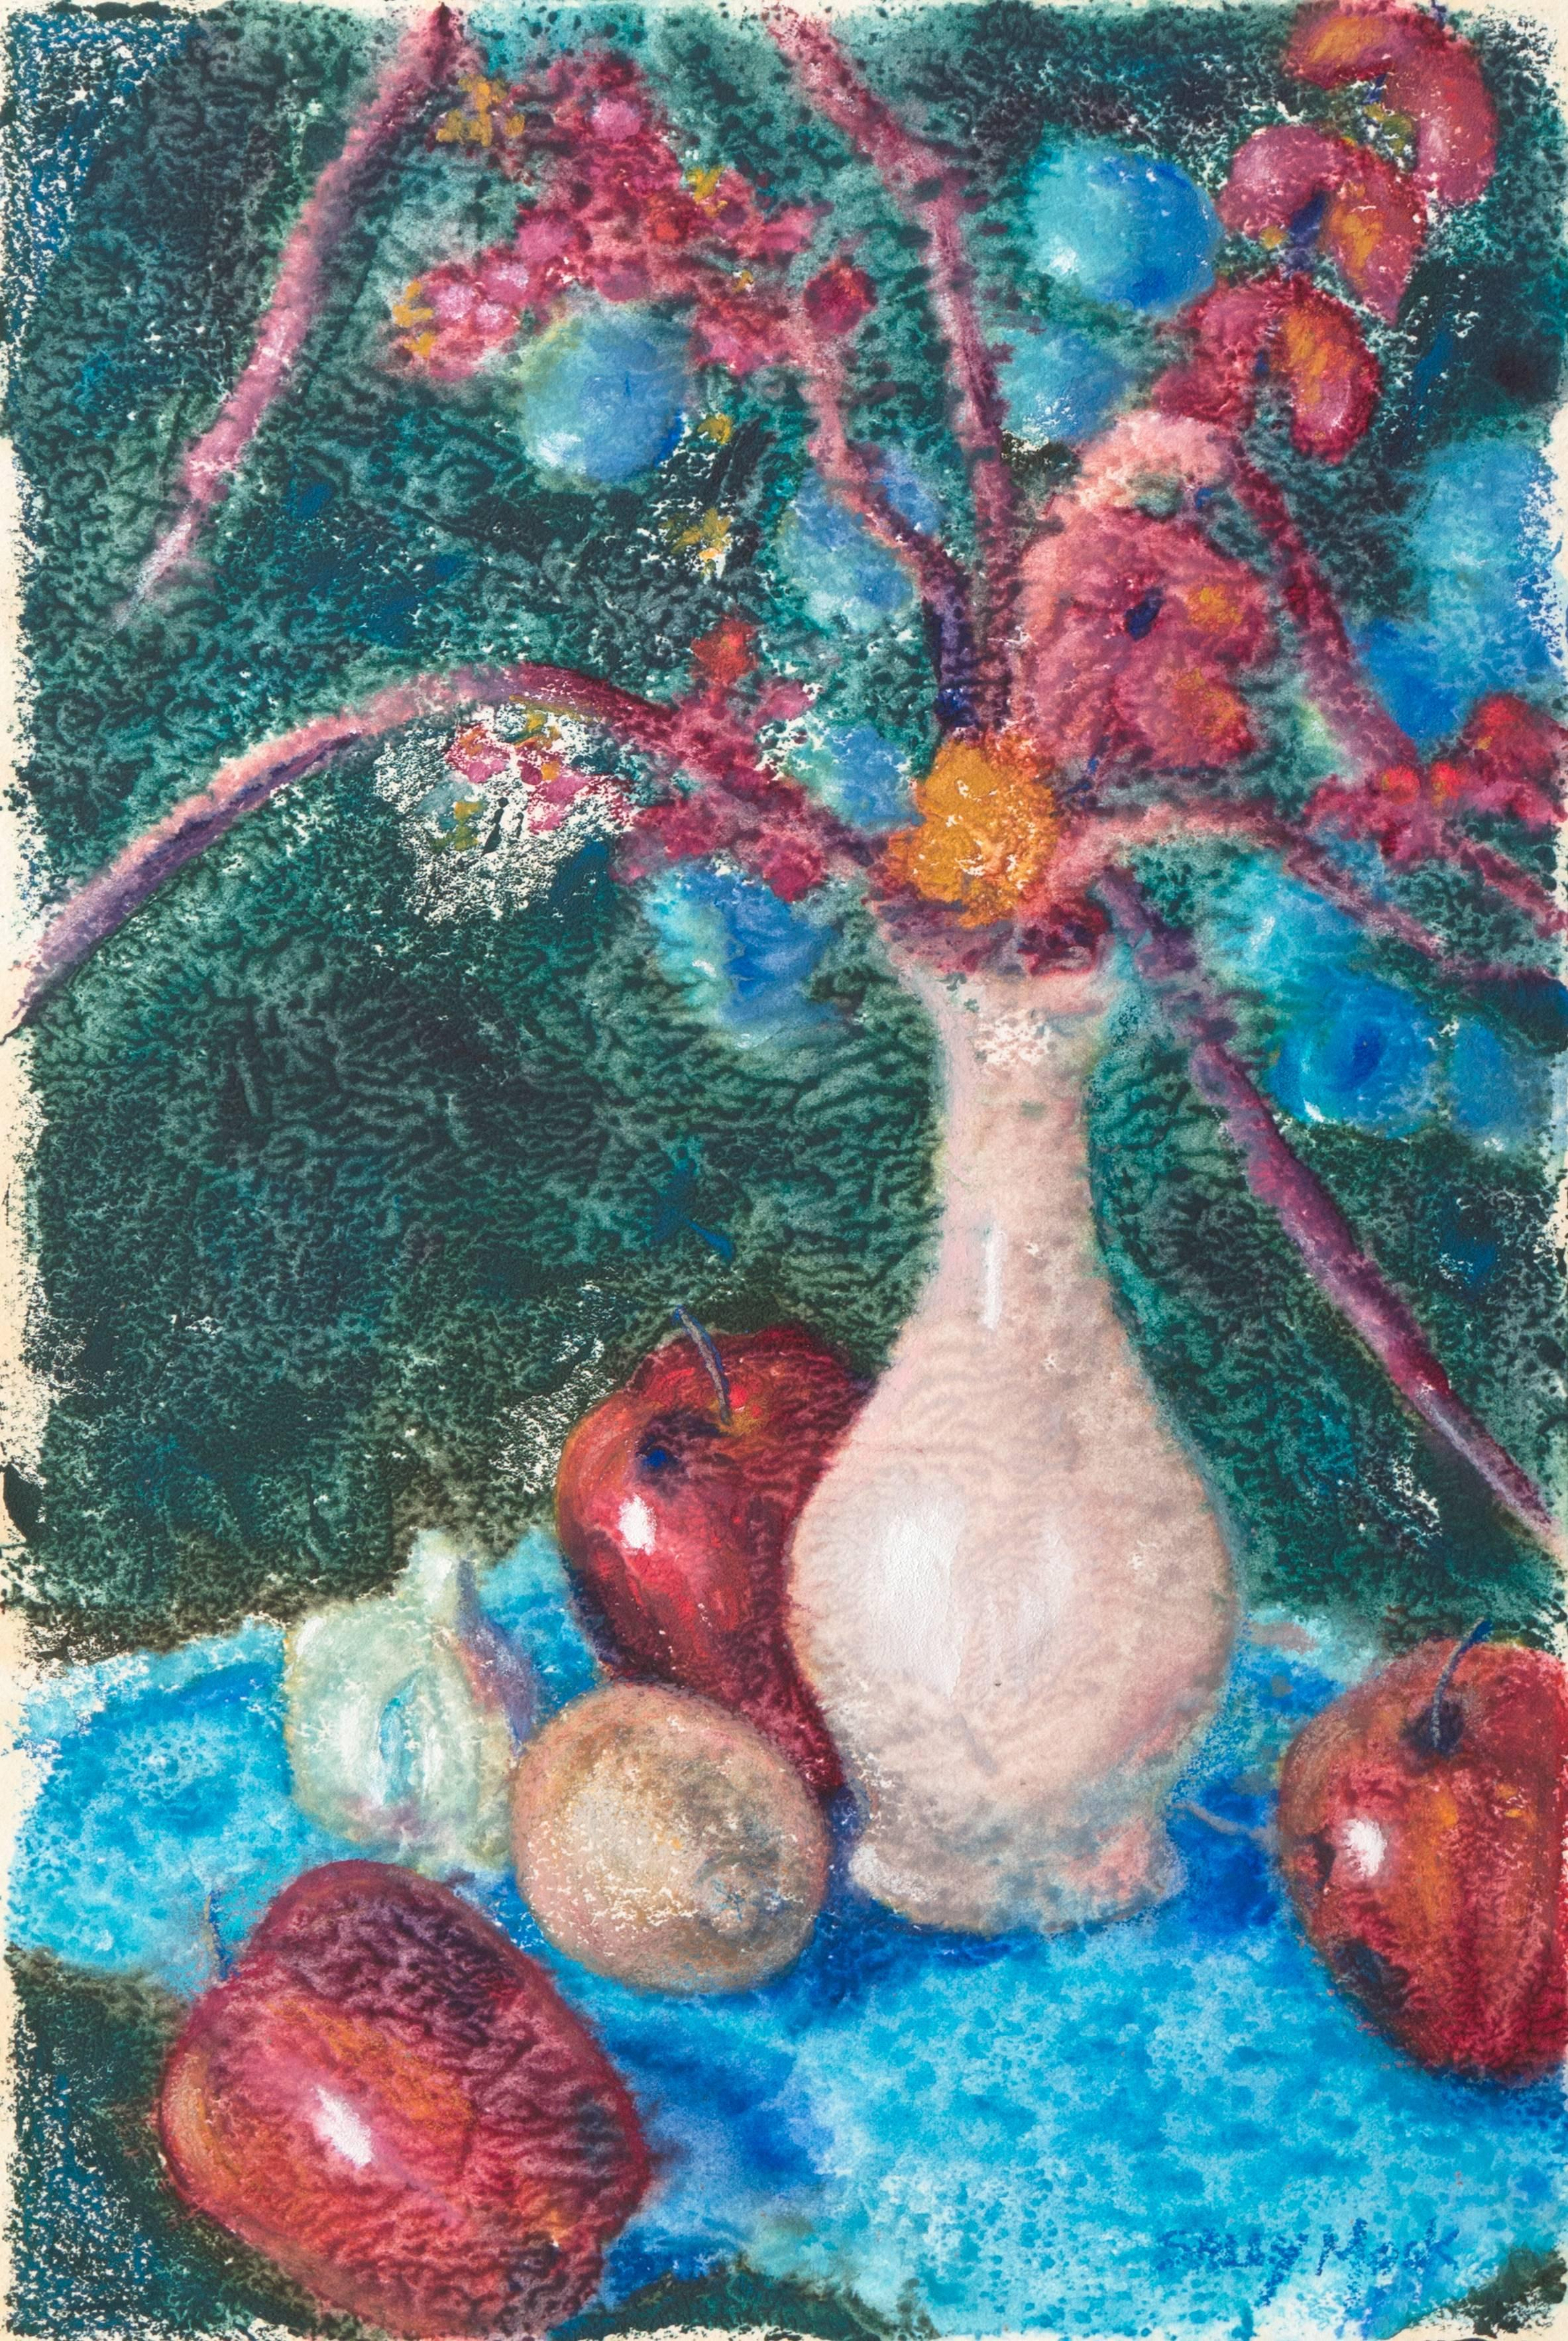 'Apples and Cherry Blossoms', Modernist Still Life